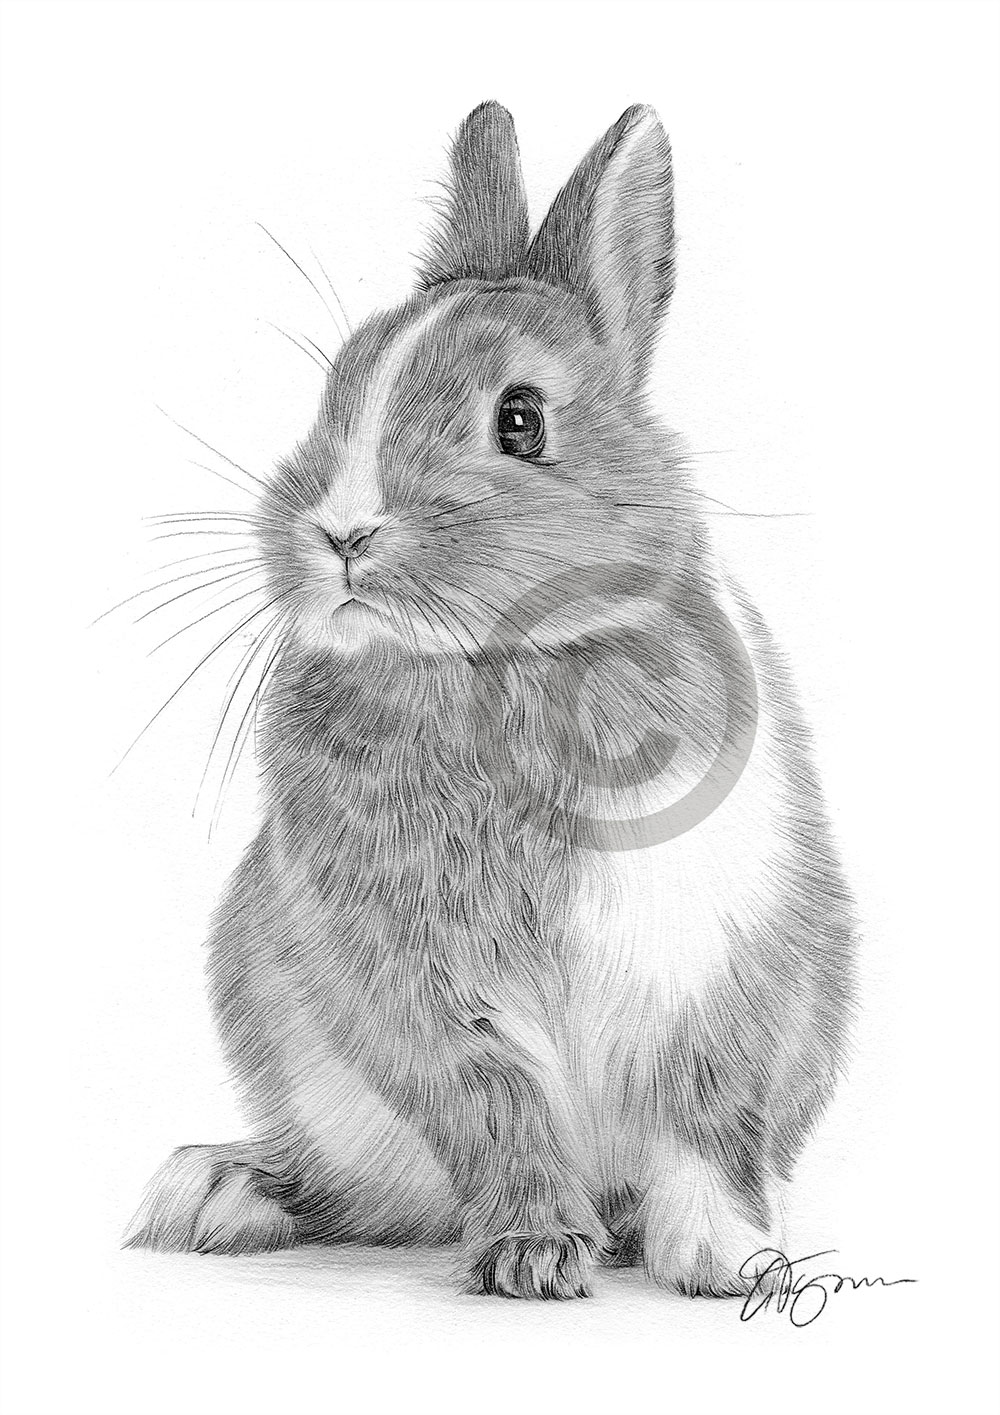 Pencil drawing of a bunny rabbit by UK artist Gary Tymon